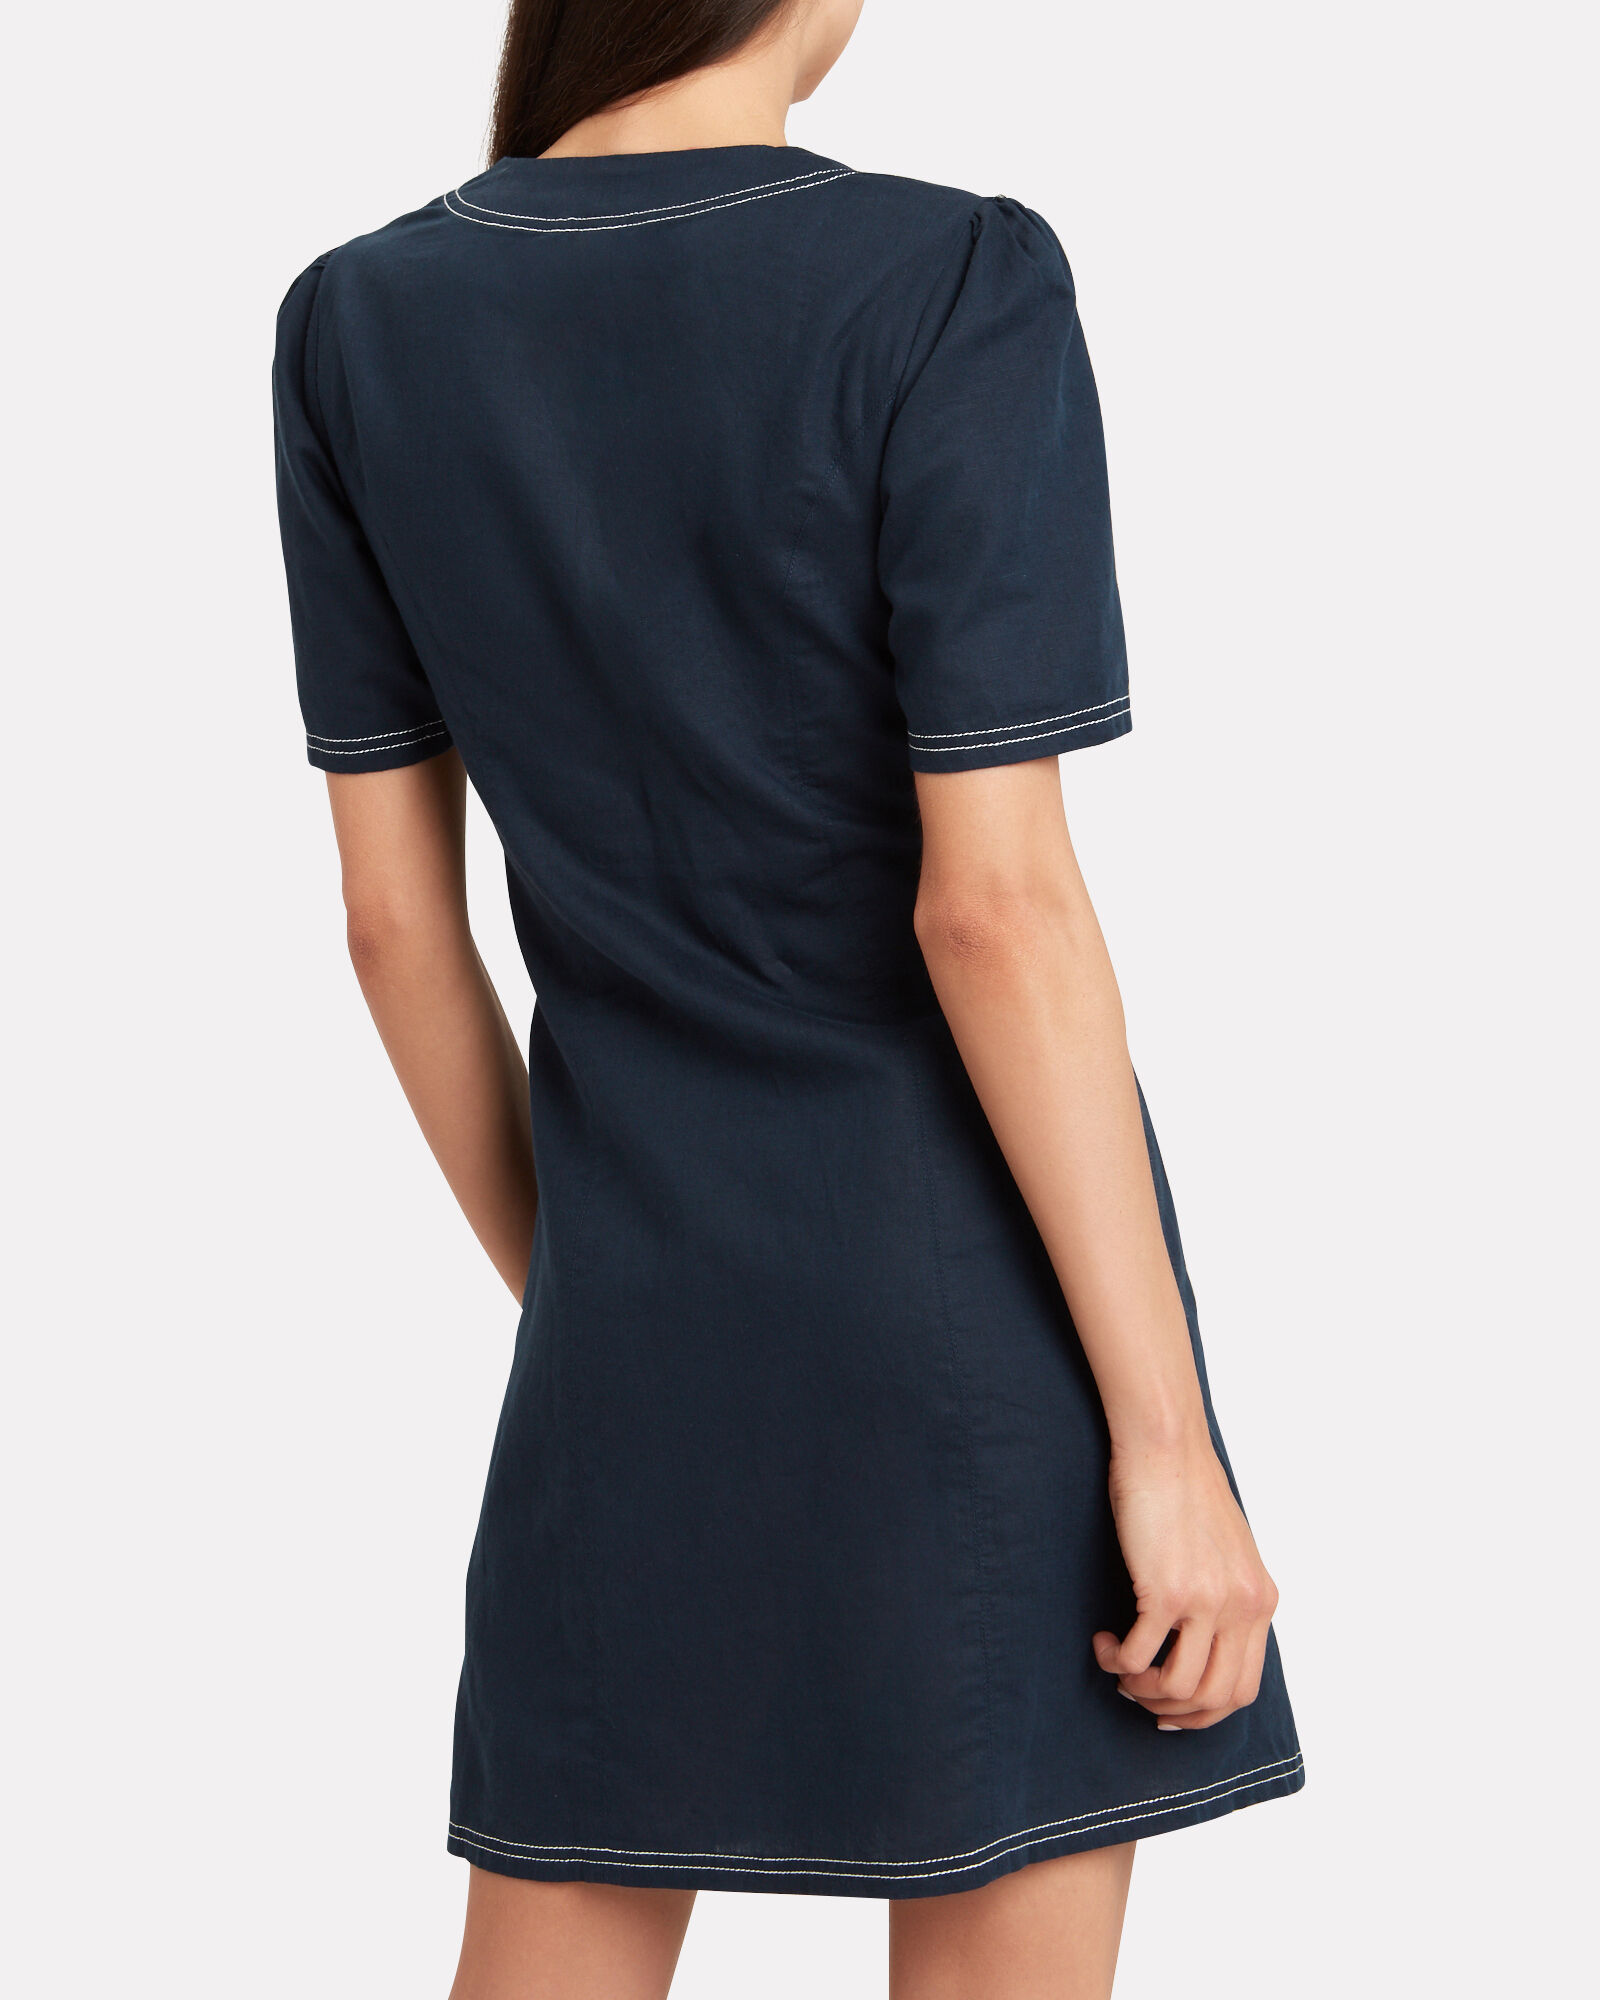 North Linen & Cotton Mini Dress, NAVY, hi-res